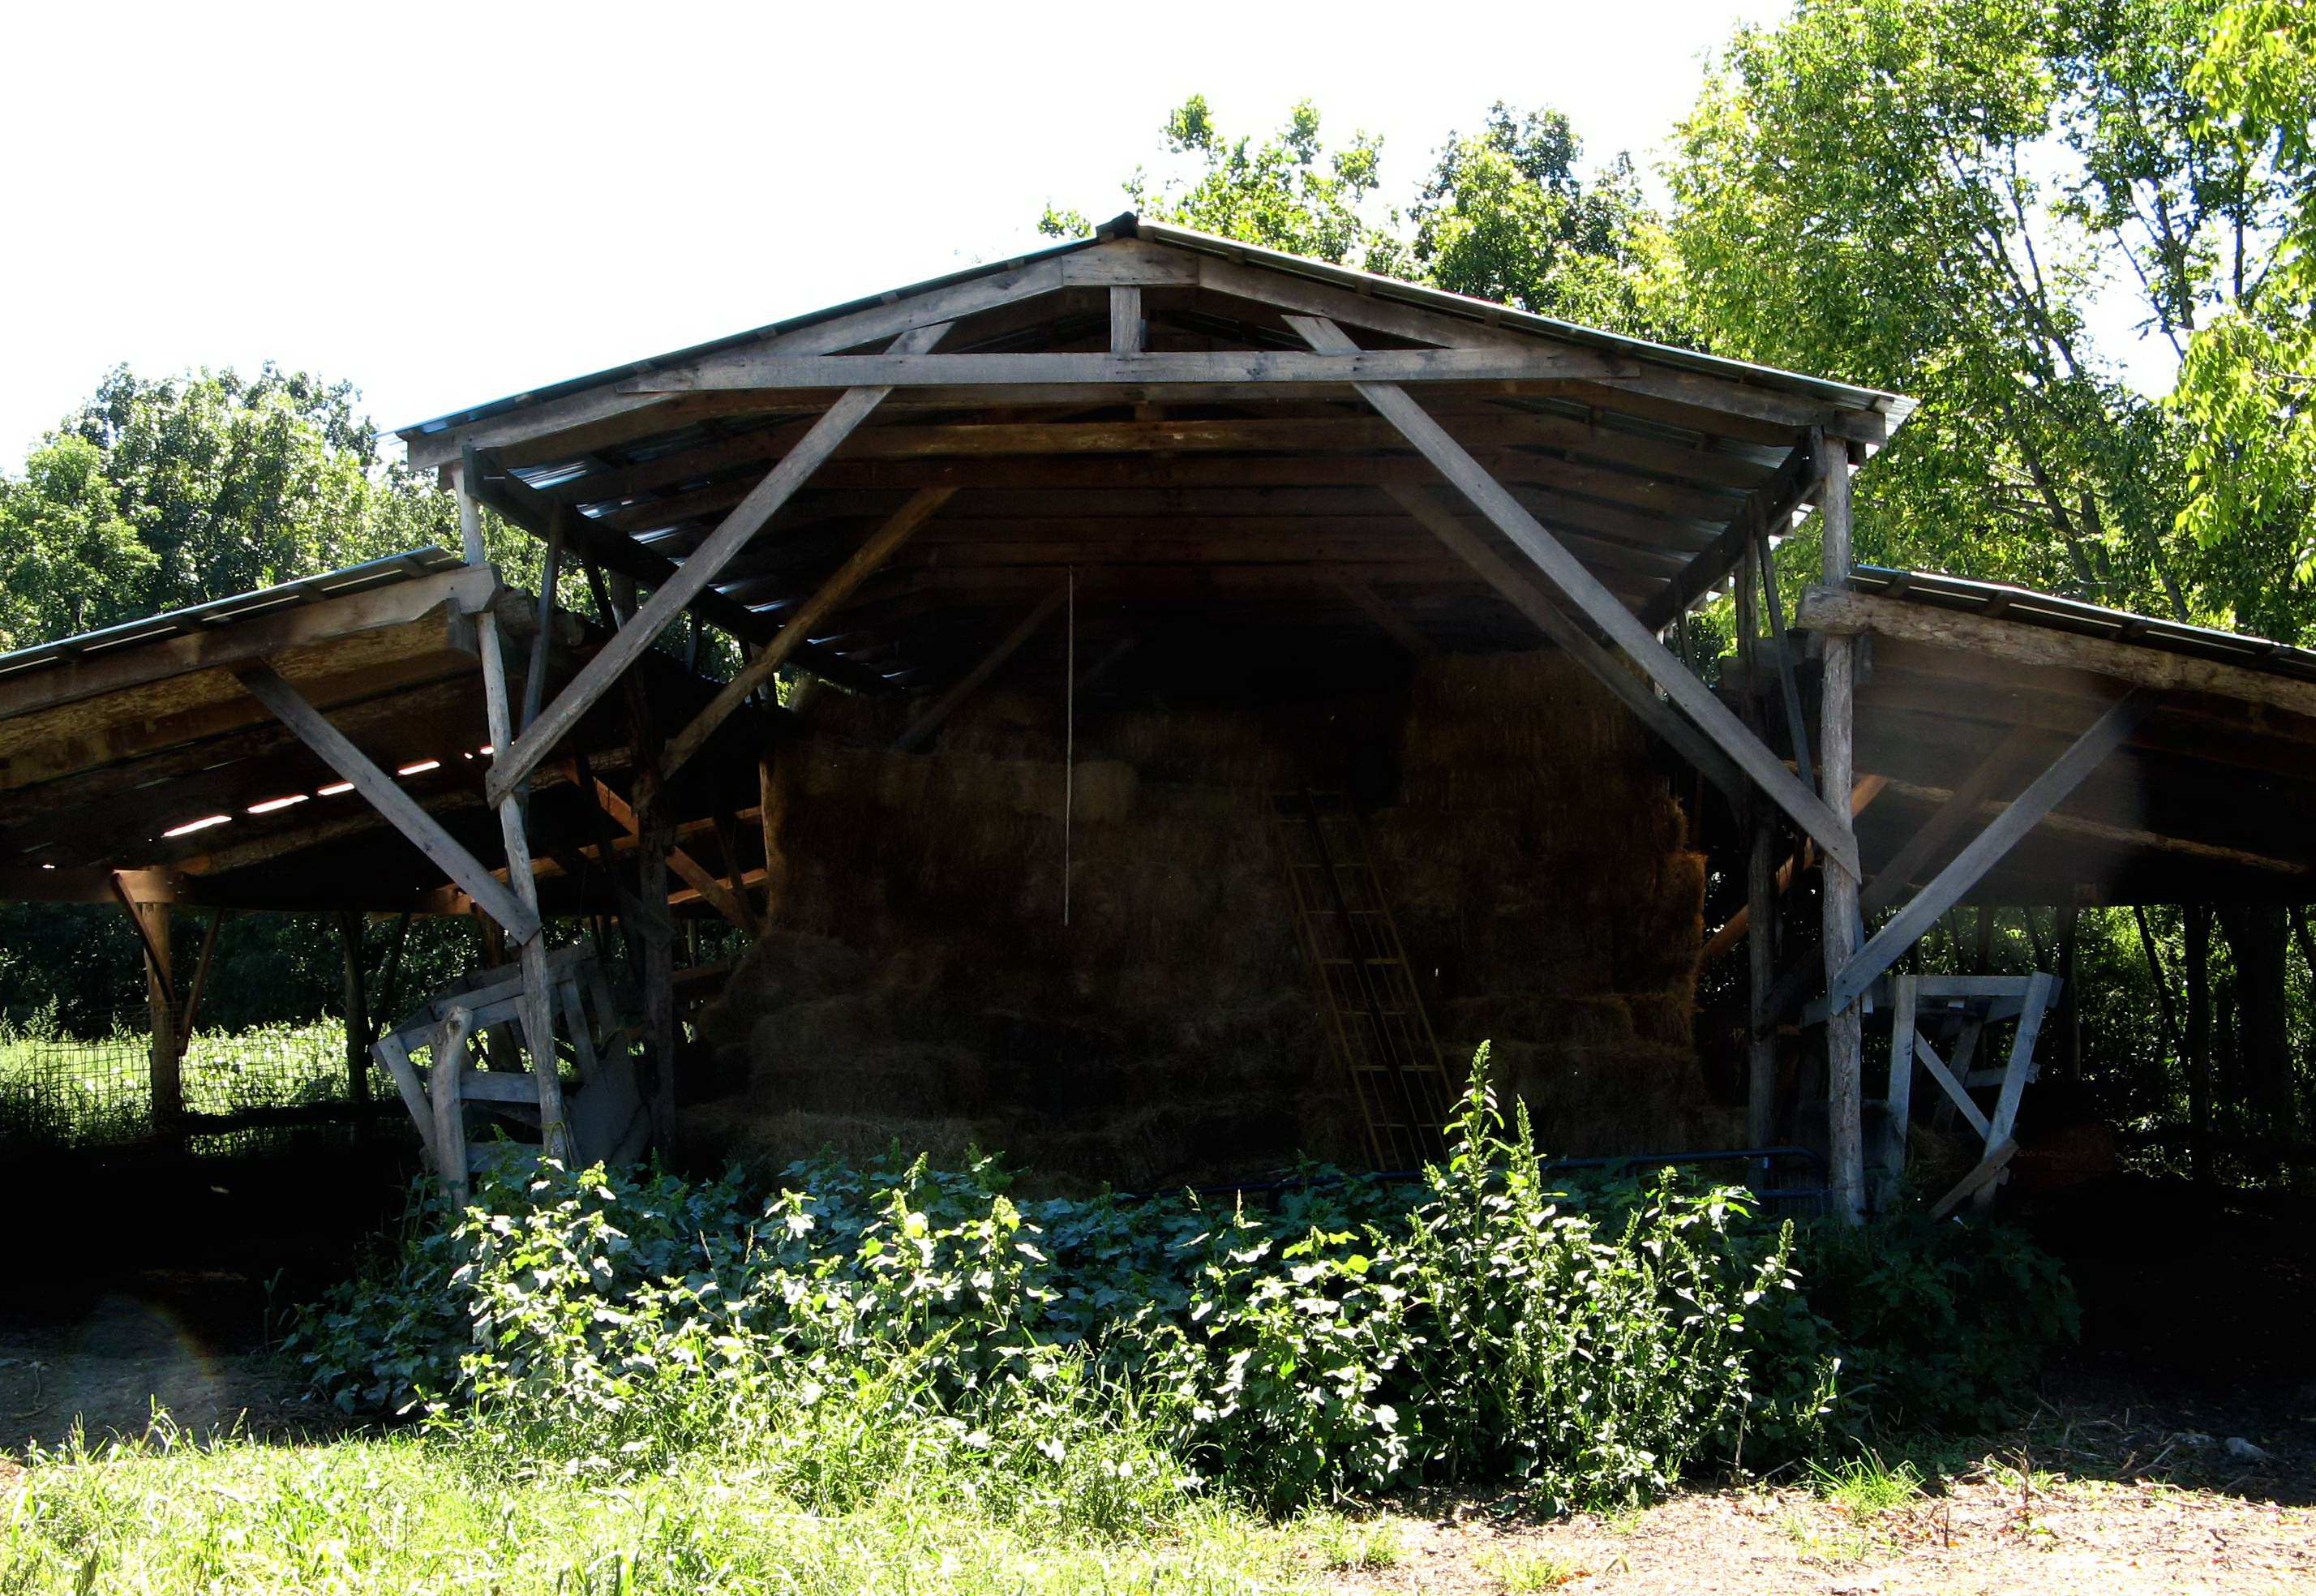 Barn made famous in The Omnivore's Dilemma